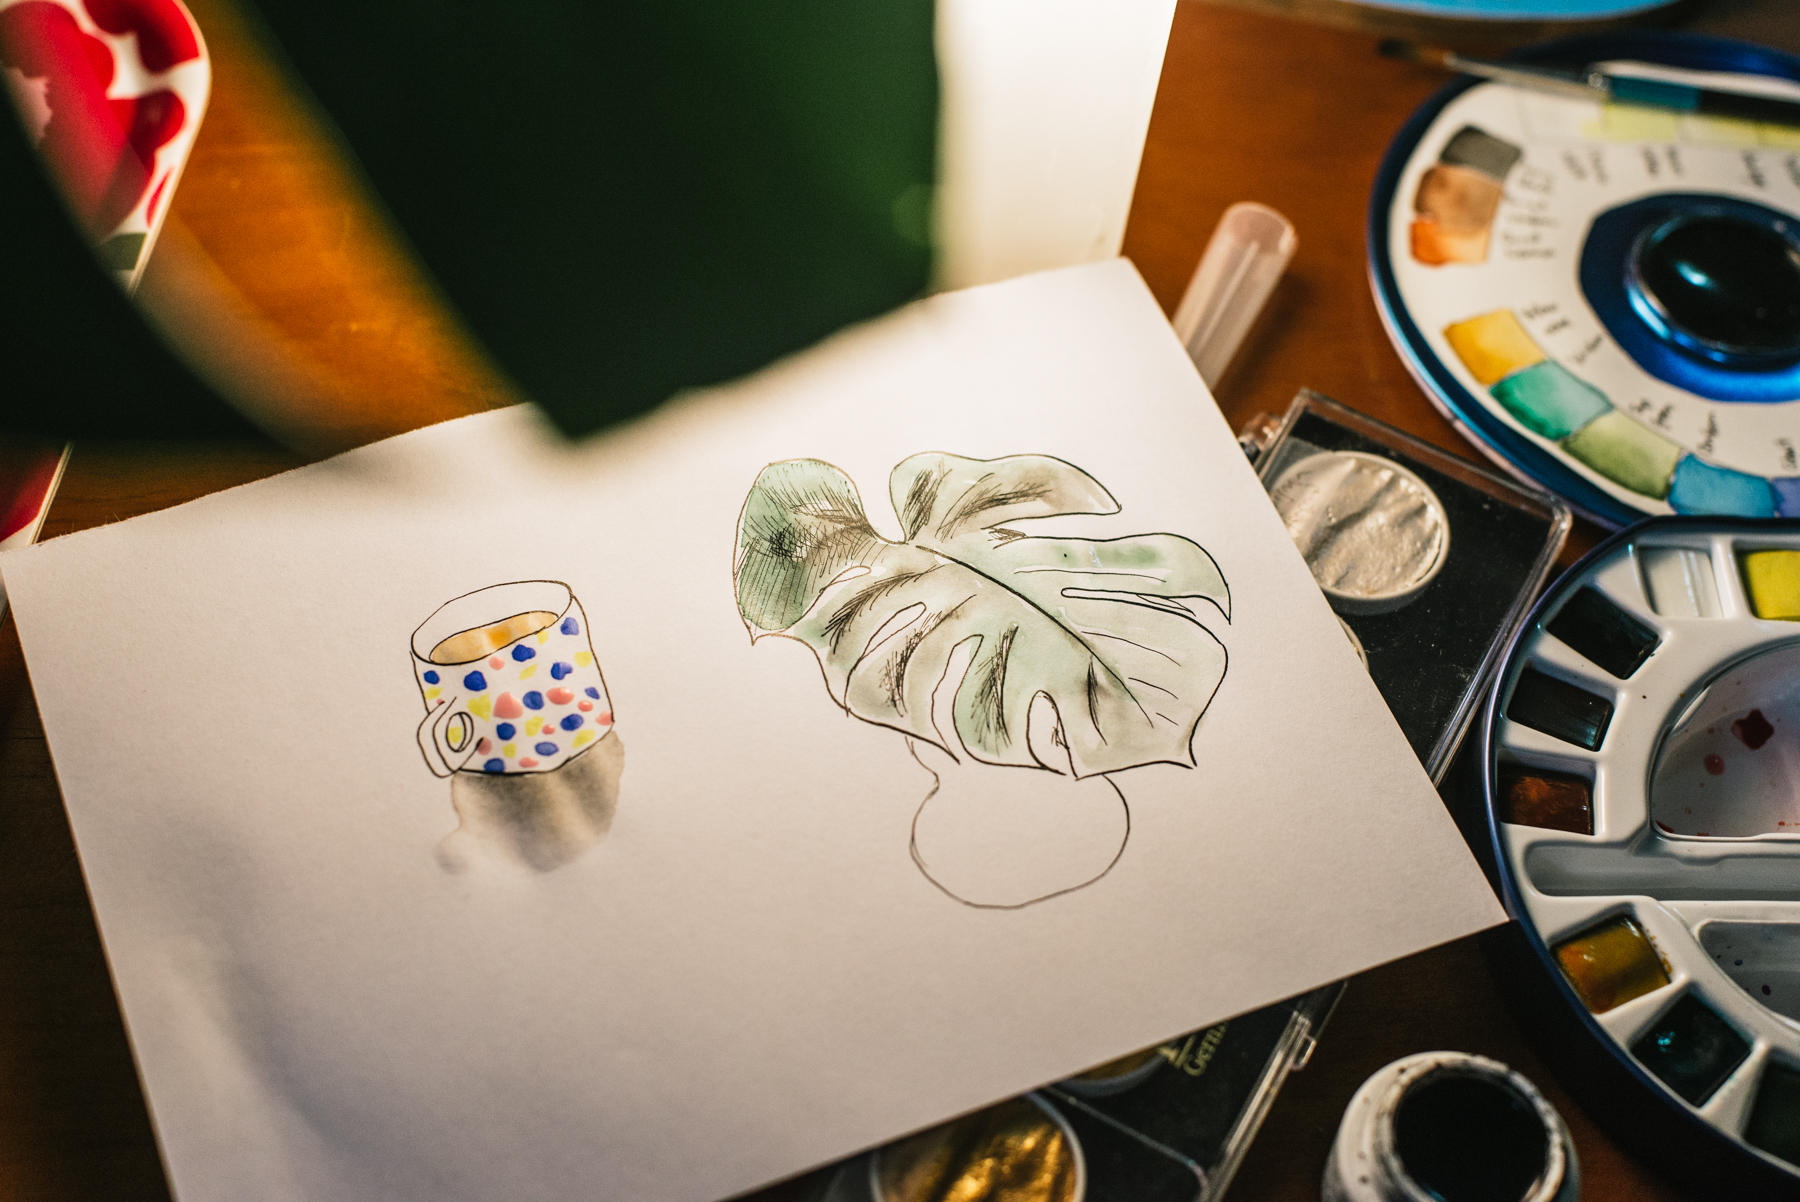 I drew my cup of tea and the leaf.